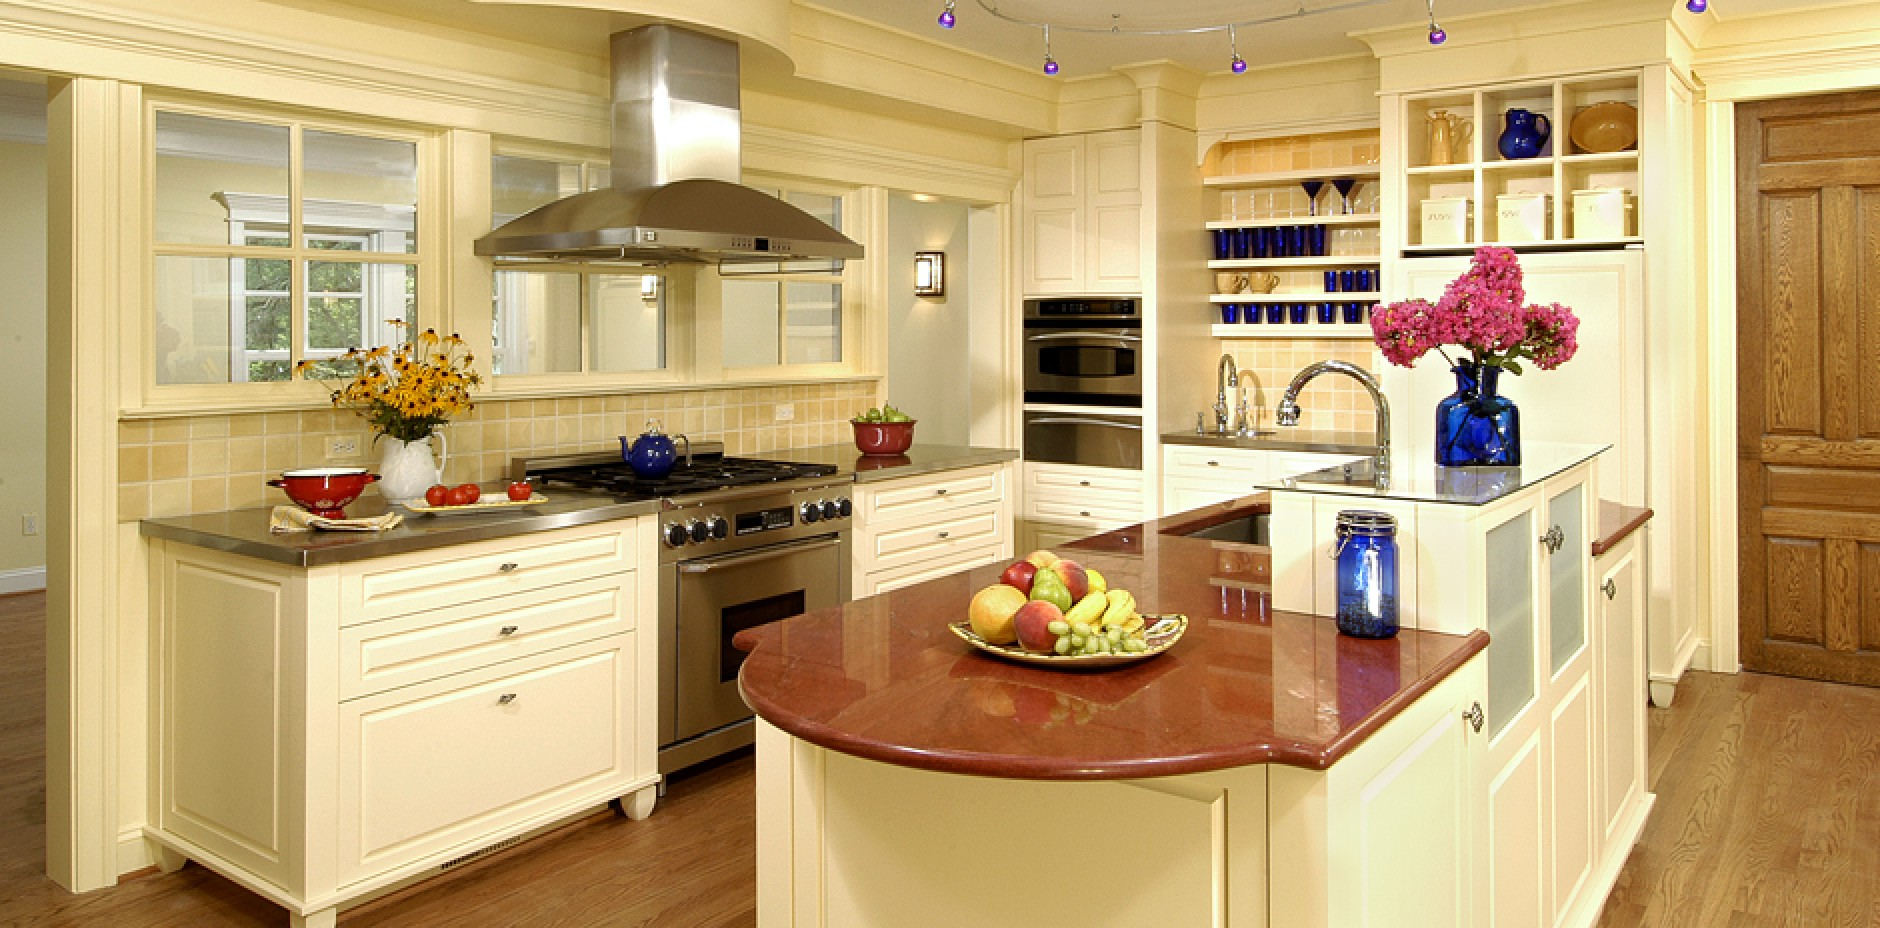 Historic Transitional Commonwealth Home Design